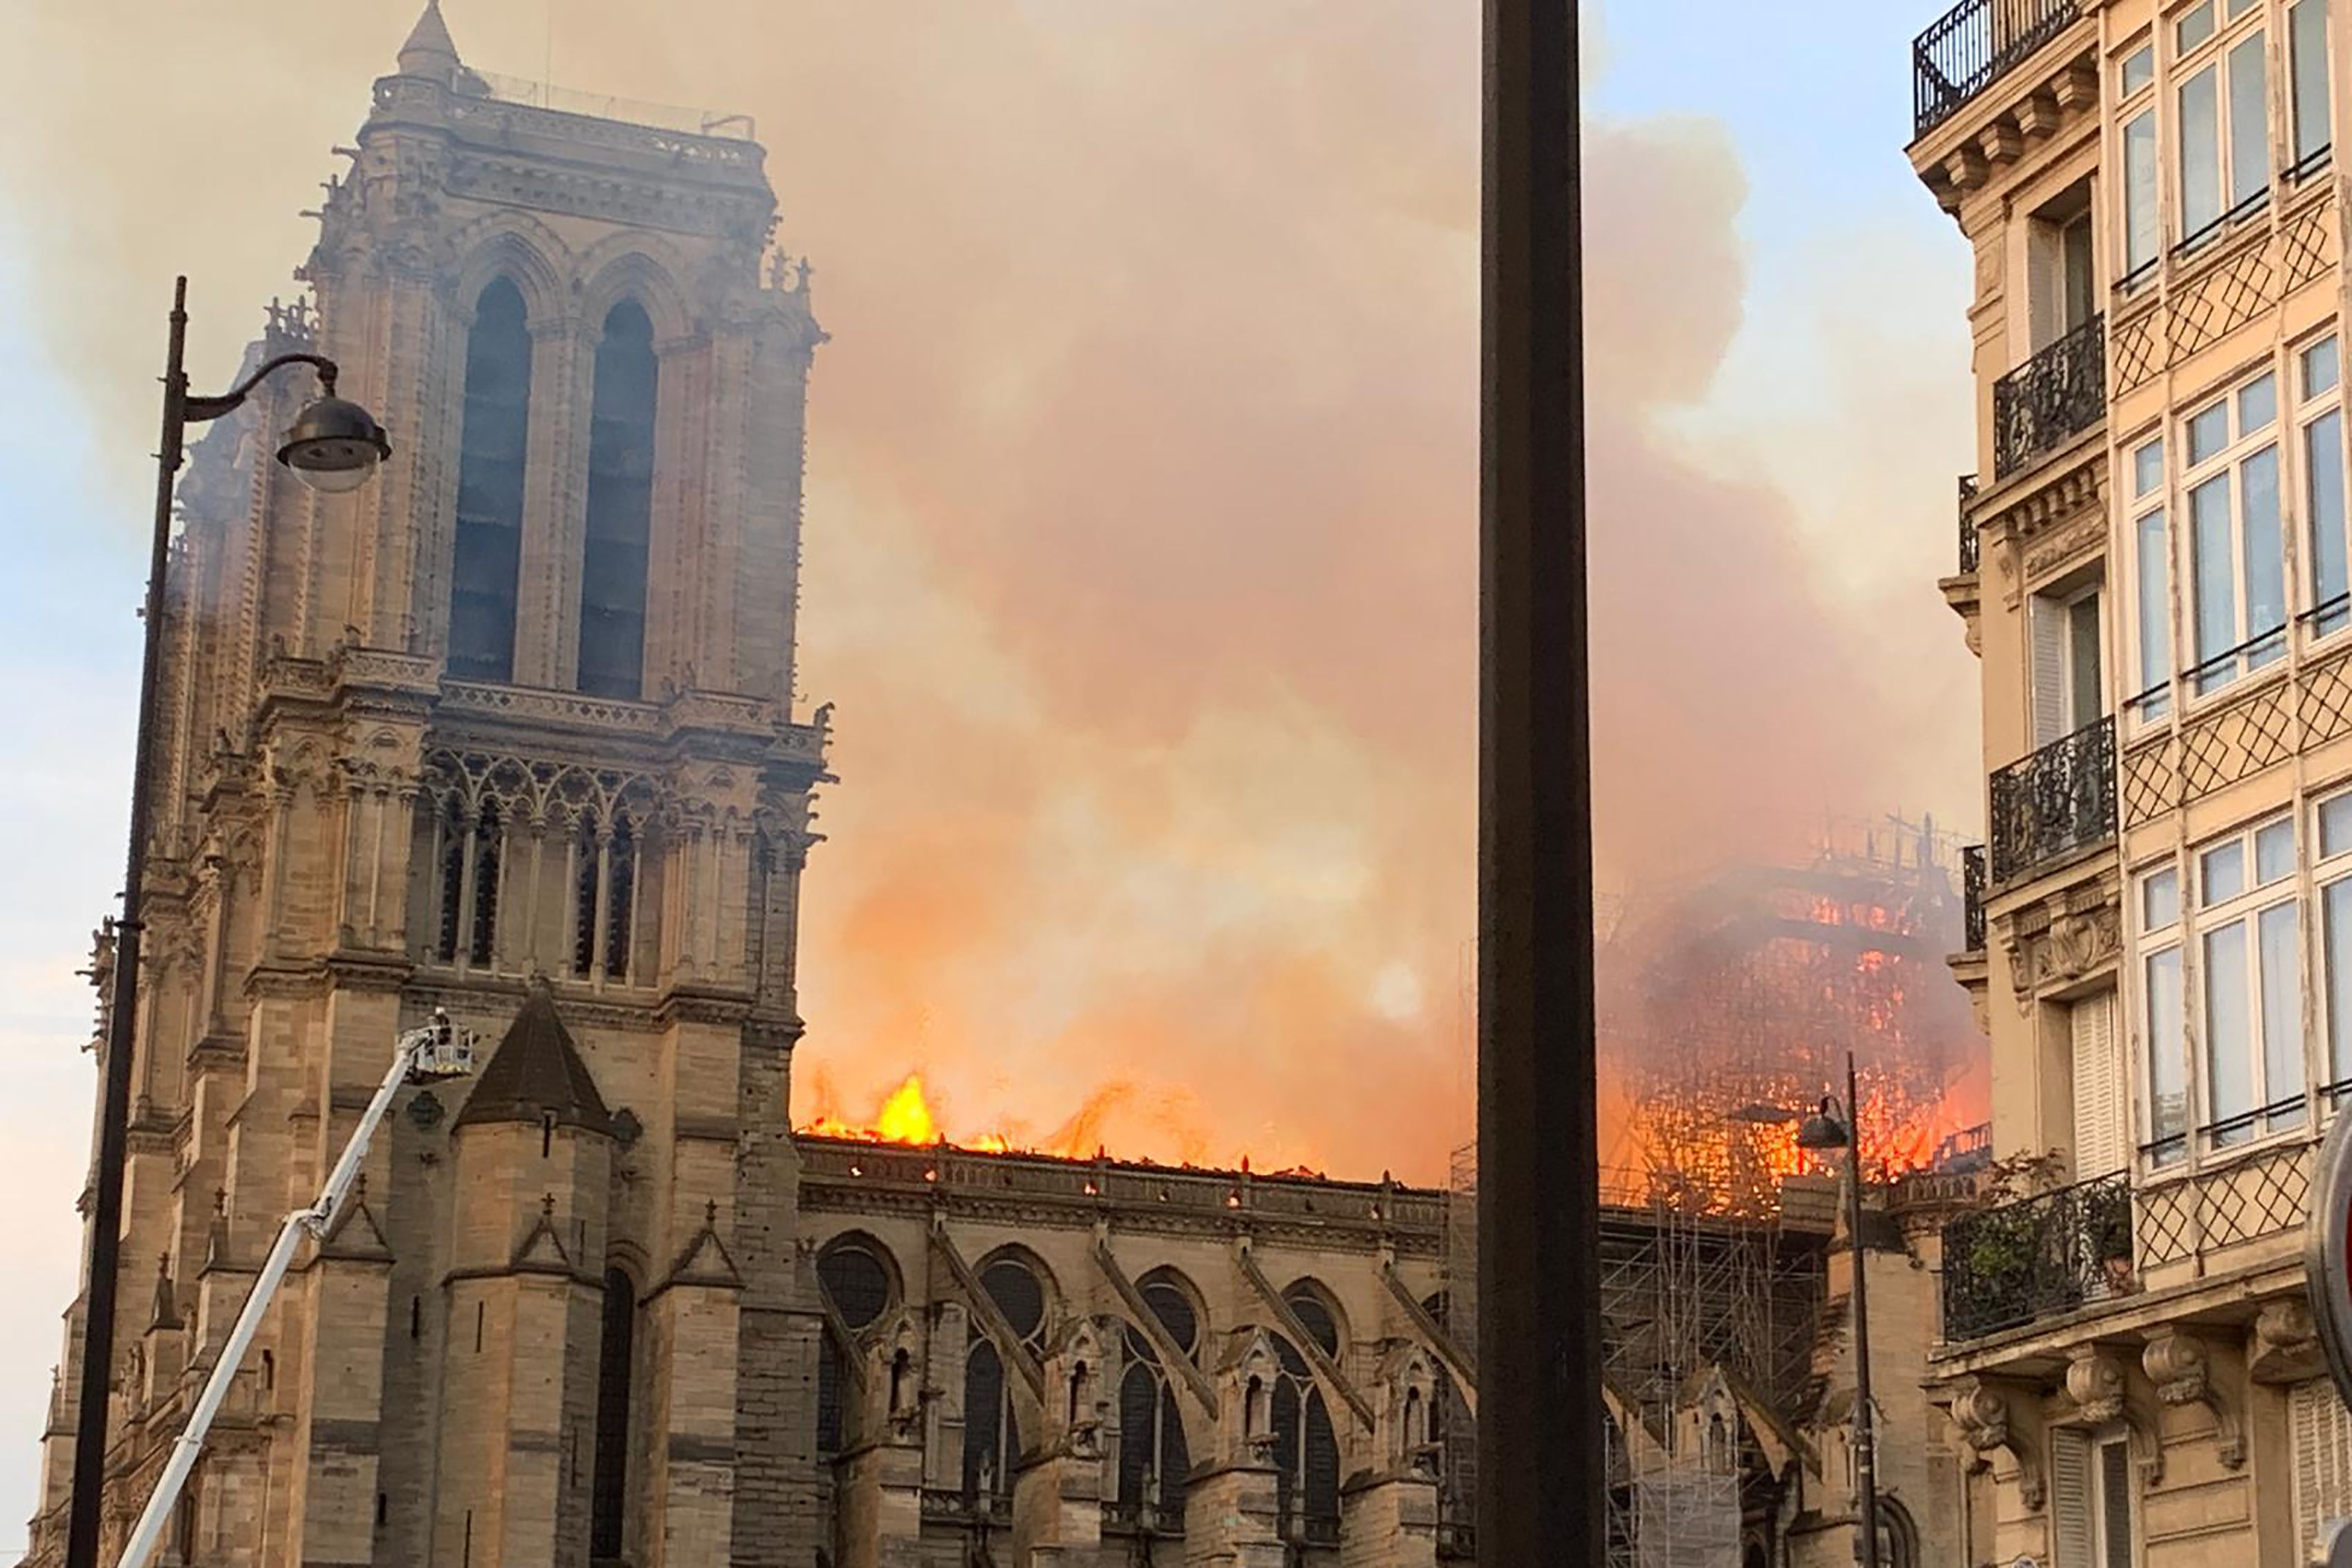 Trump Suggested Dropping Water On Notre Dame Fire That